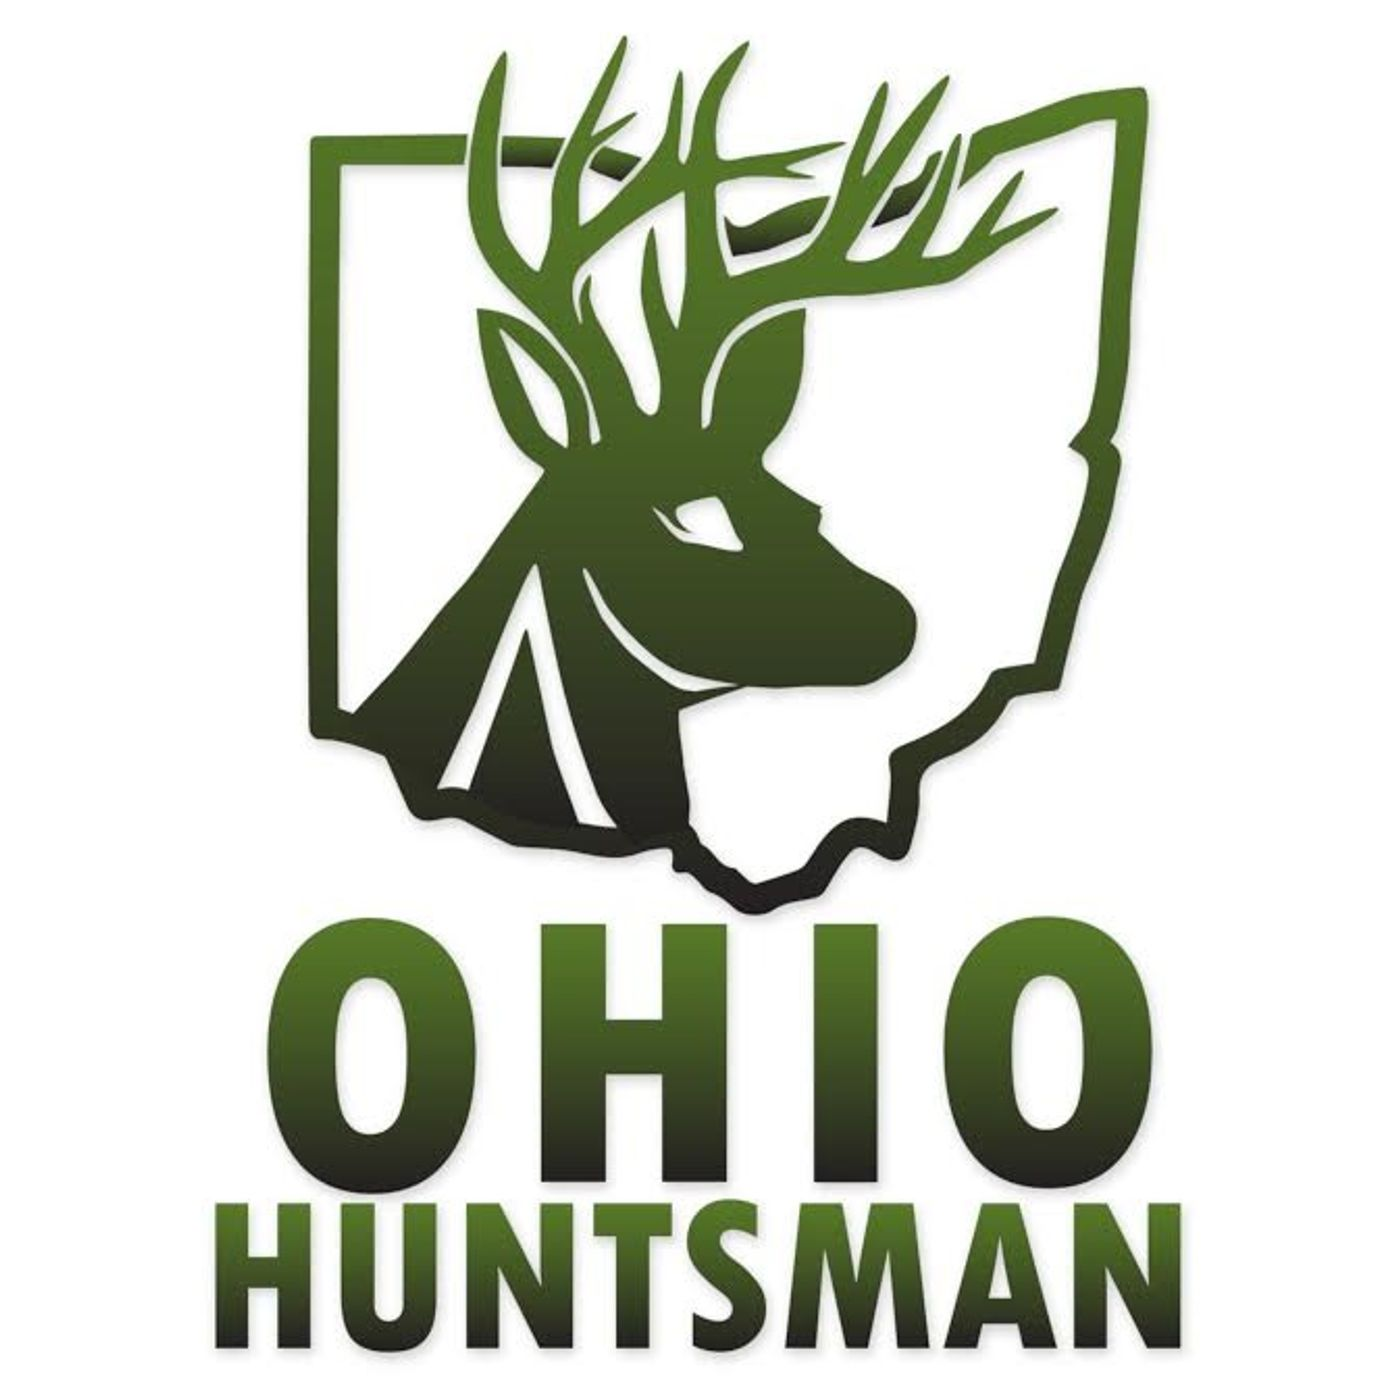 Ohio Huntsman - Introducing Kids To The Outdoors